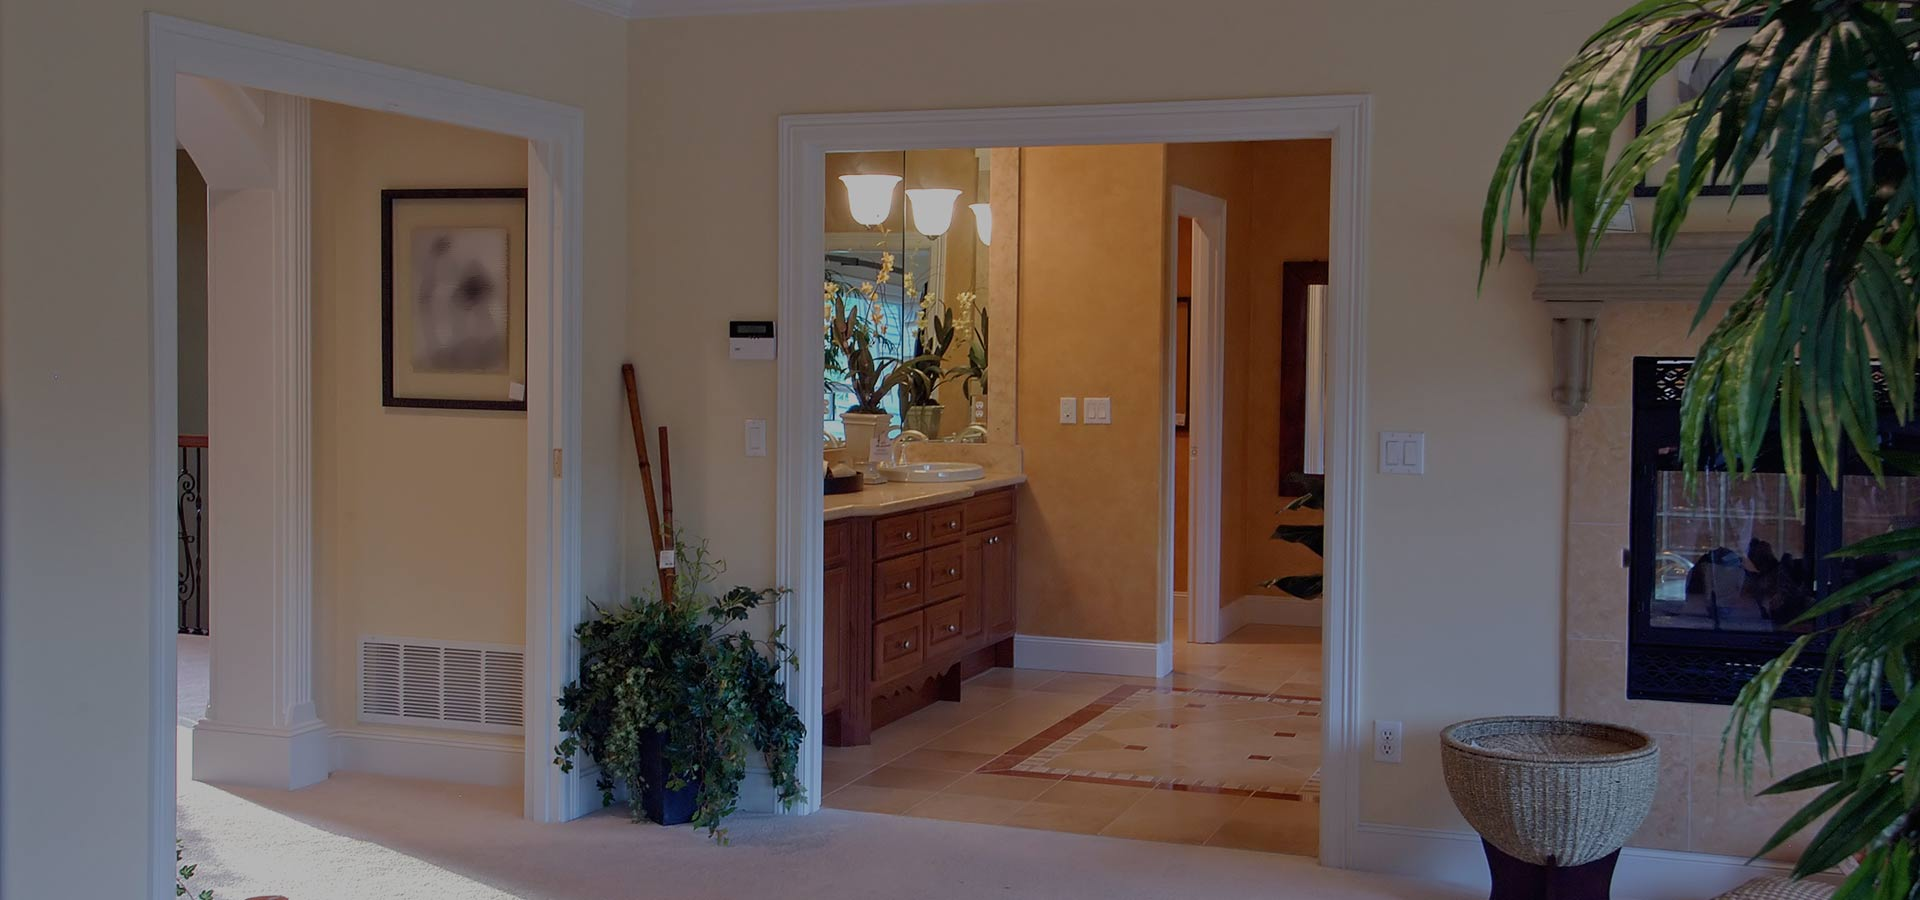 How to Implement ADA Requirements In Your Home Ada Guidelines For Mobile Home Bathrooms on ada bathroom specs, ada bathroom dimensions, ada toilet diagram, ada compliant bathroom plans, ada bathroom layout, ada bathroom design, ada bathroom clearances, ada toilet standards, ada bathroom requirements diagram, ada handicap bathroom requirements commercial,